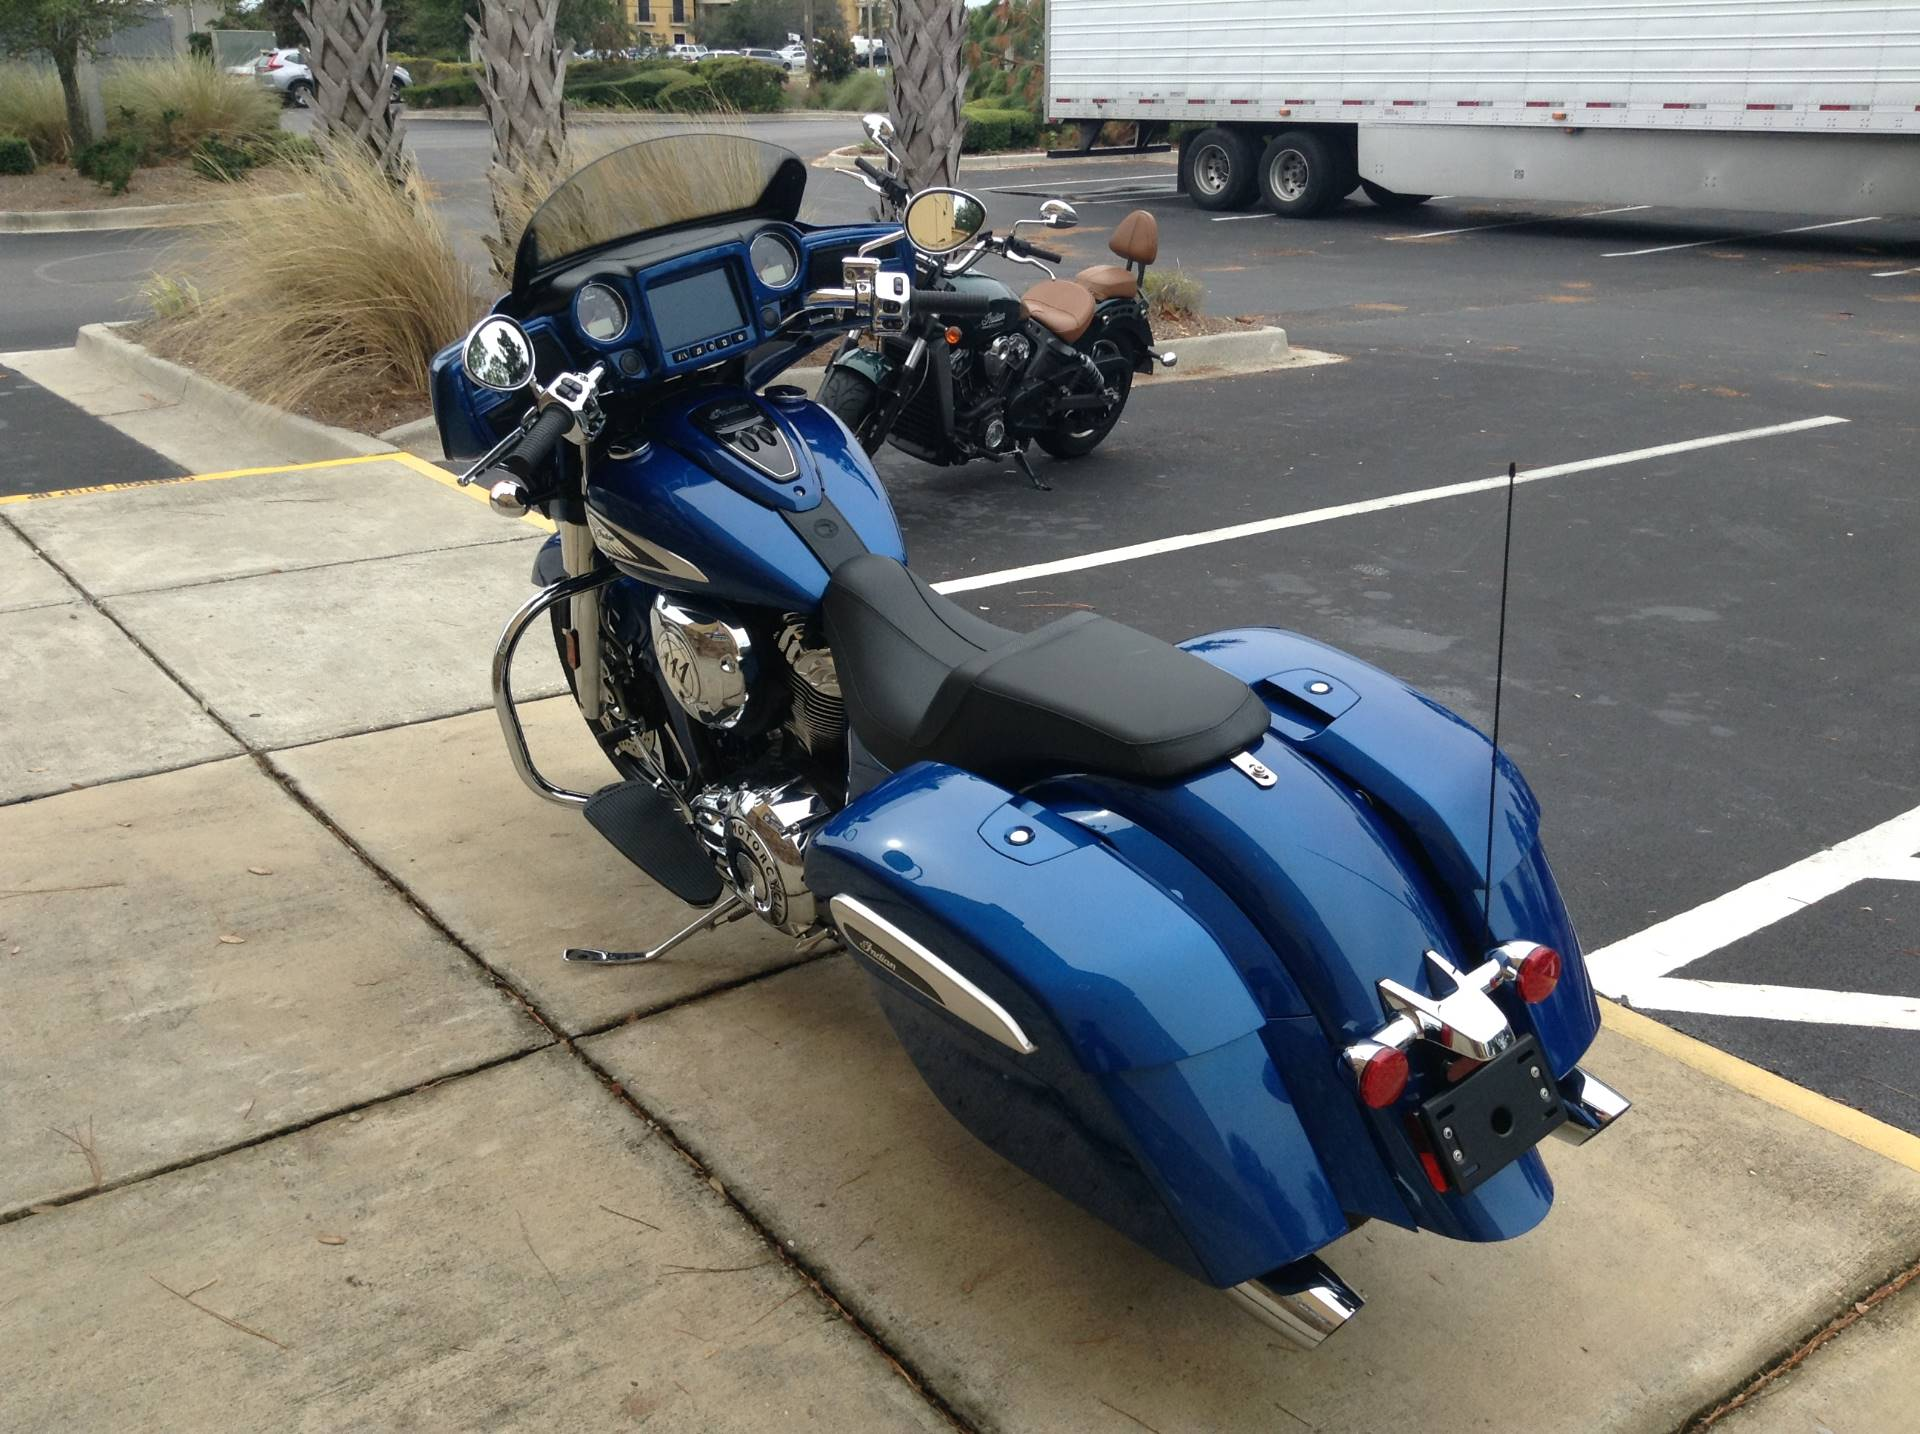 2019 Indian Chieftain Limited Icon Series in Panama City Beach, Florida